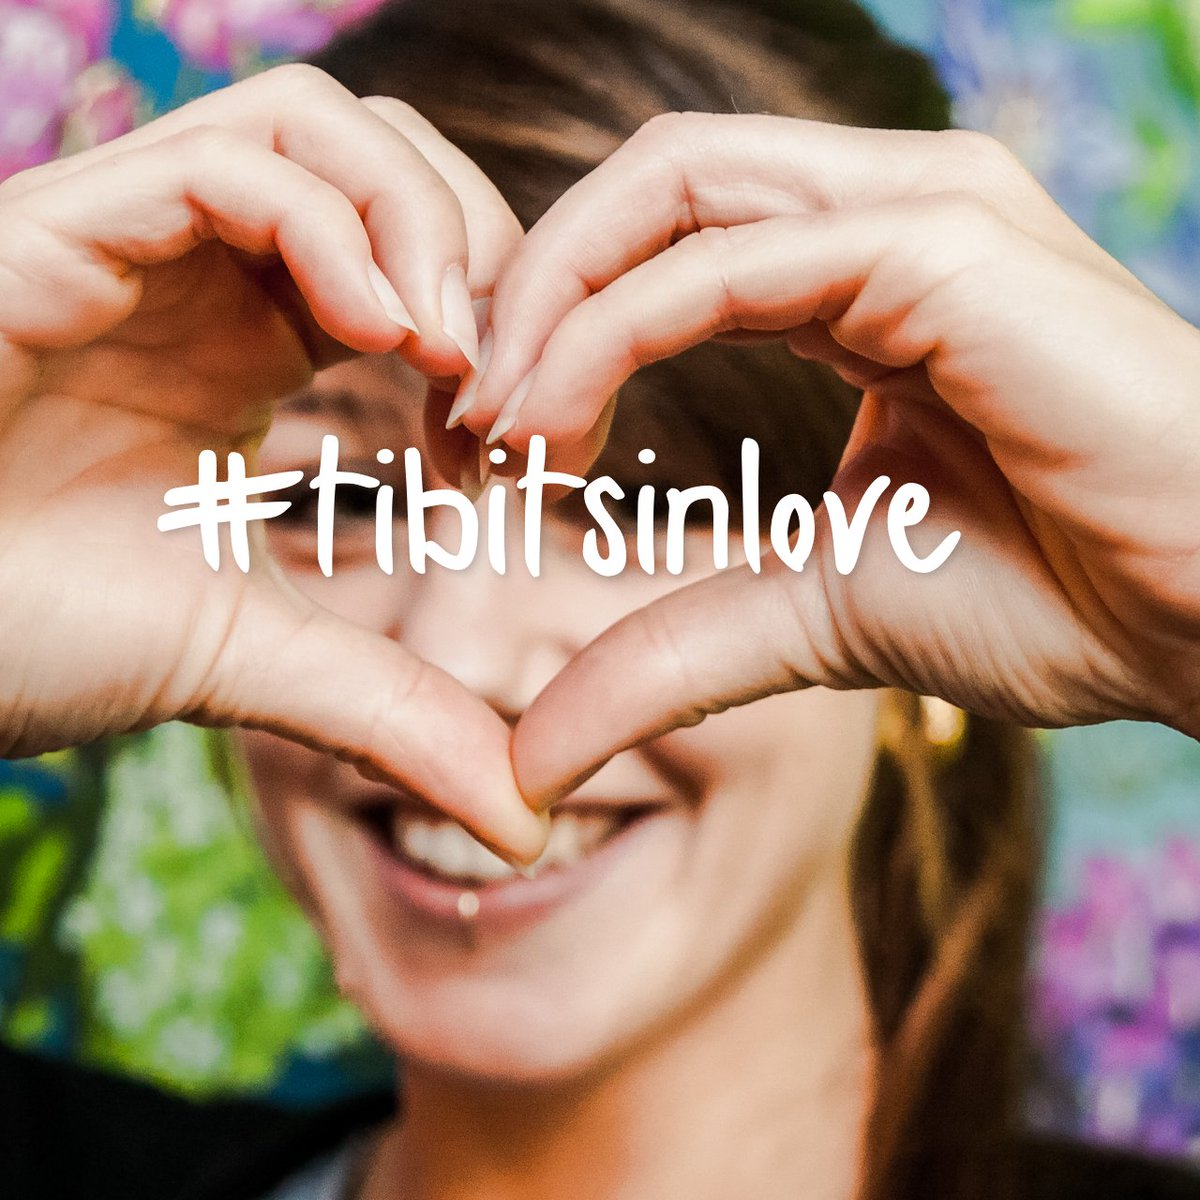 Fall in love this Wednesday @tibits_uk https://t.co/KktvFGAaIT #love #Single #RelationshipGoals #plantbased #veggie #DATING #wednesday https://t.co/qYWQVPLo2m